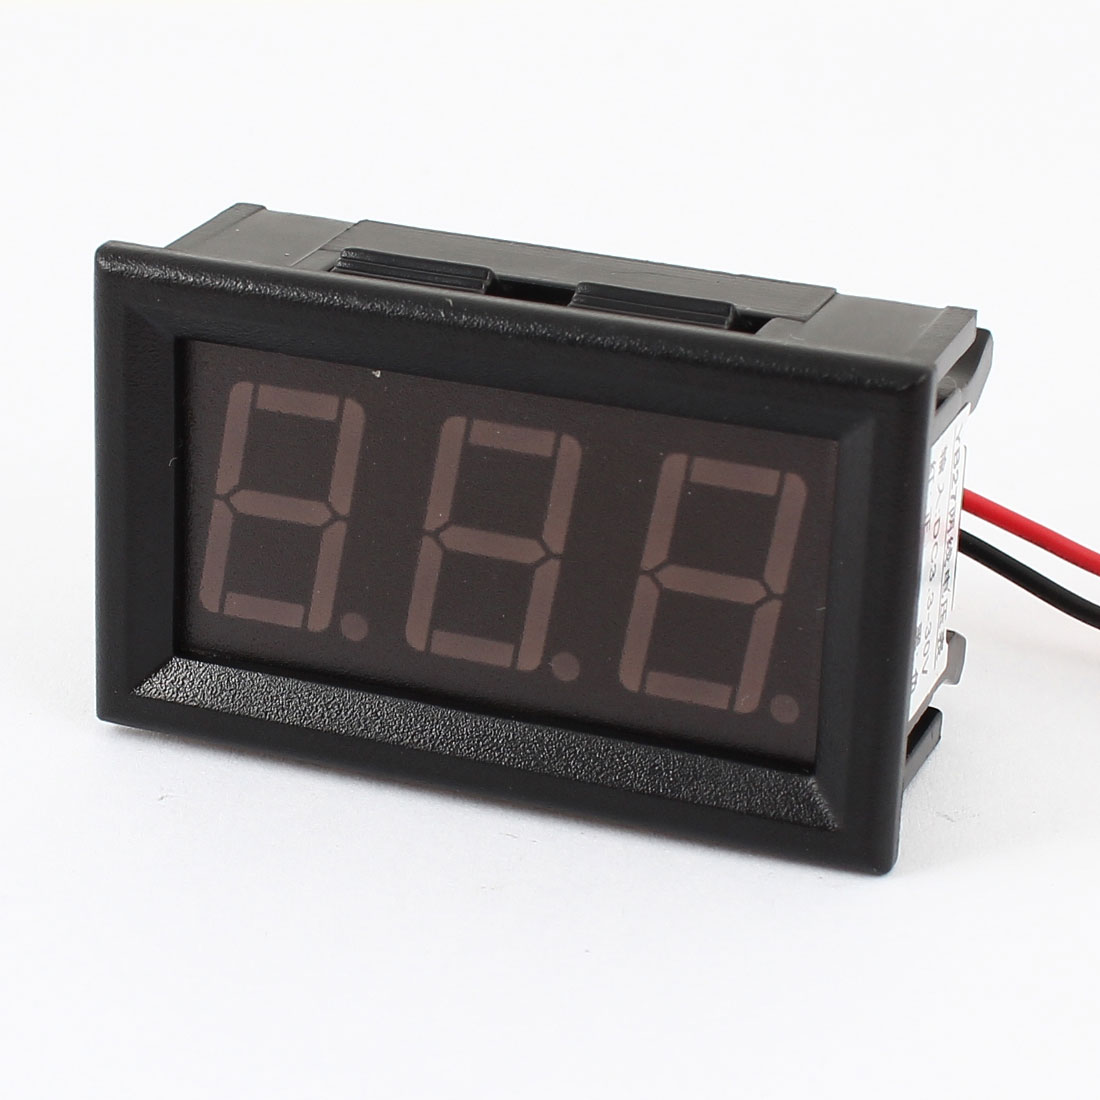 DC3.3-30V 3 Digits Red LED 2 Cables Waterproof Digital Voltmeter